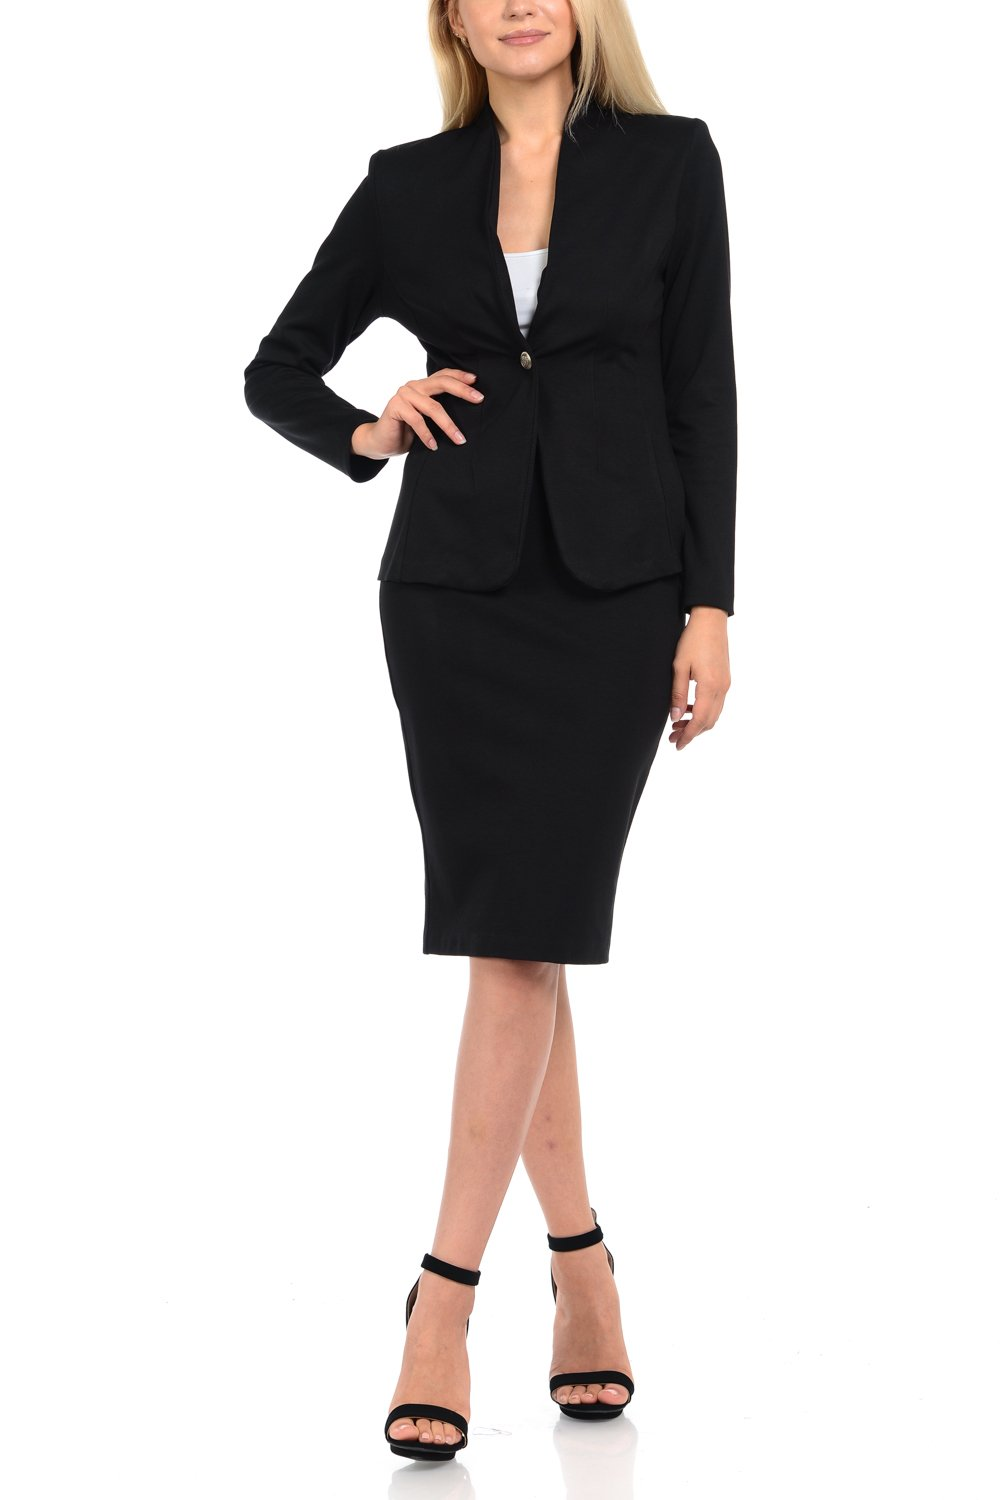 Sweethabit Womens Wear to Work Solid Skirt Suit Set (XLarge, 3124-3087B_Black)